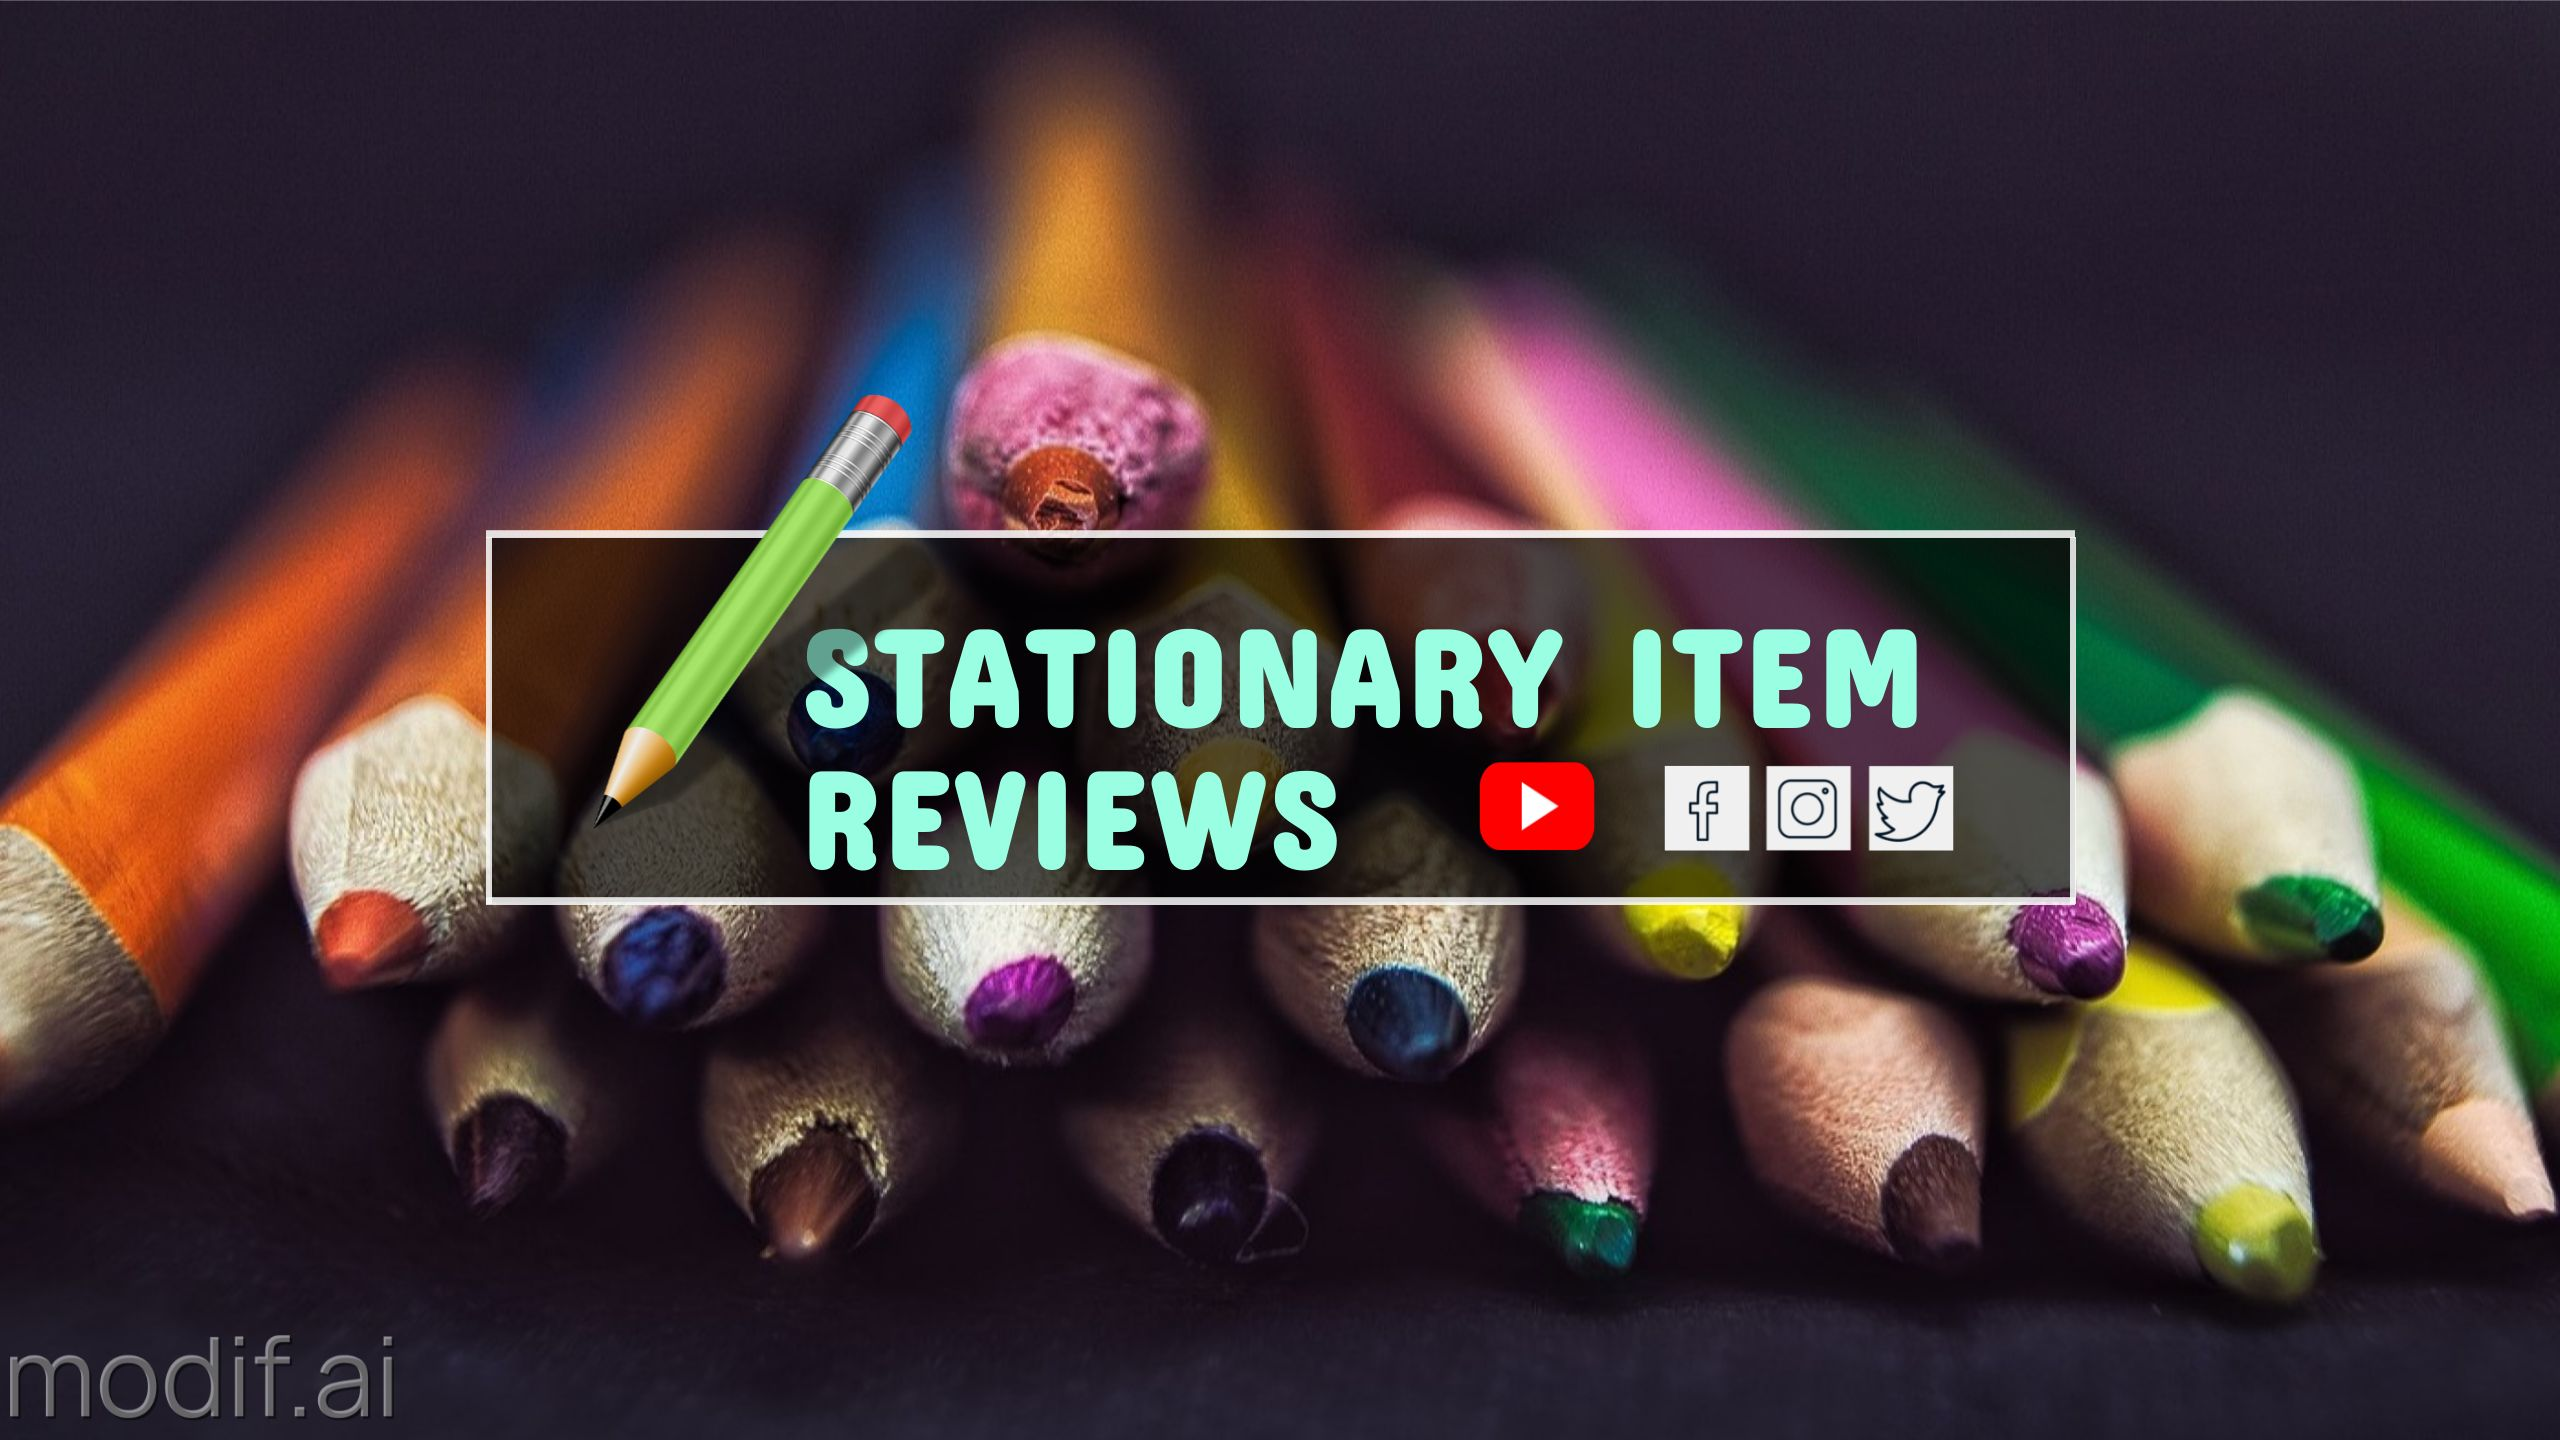 Stationary Item Review YouTube Channel Art